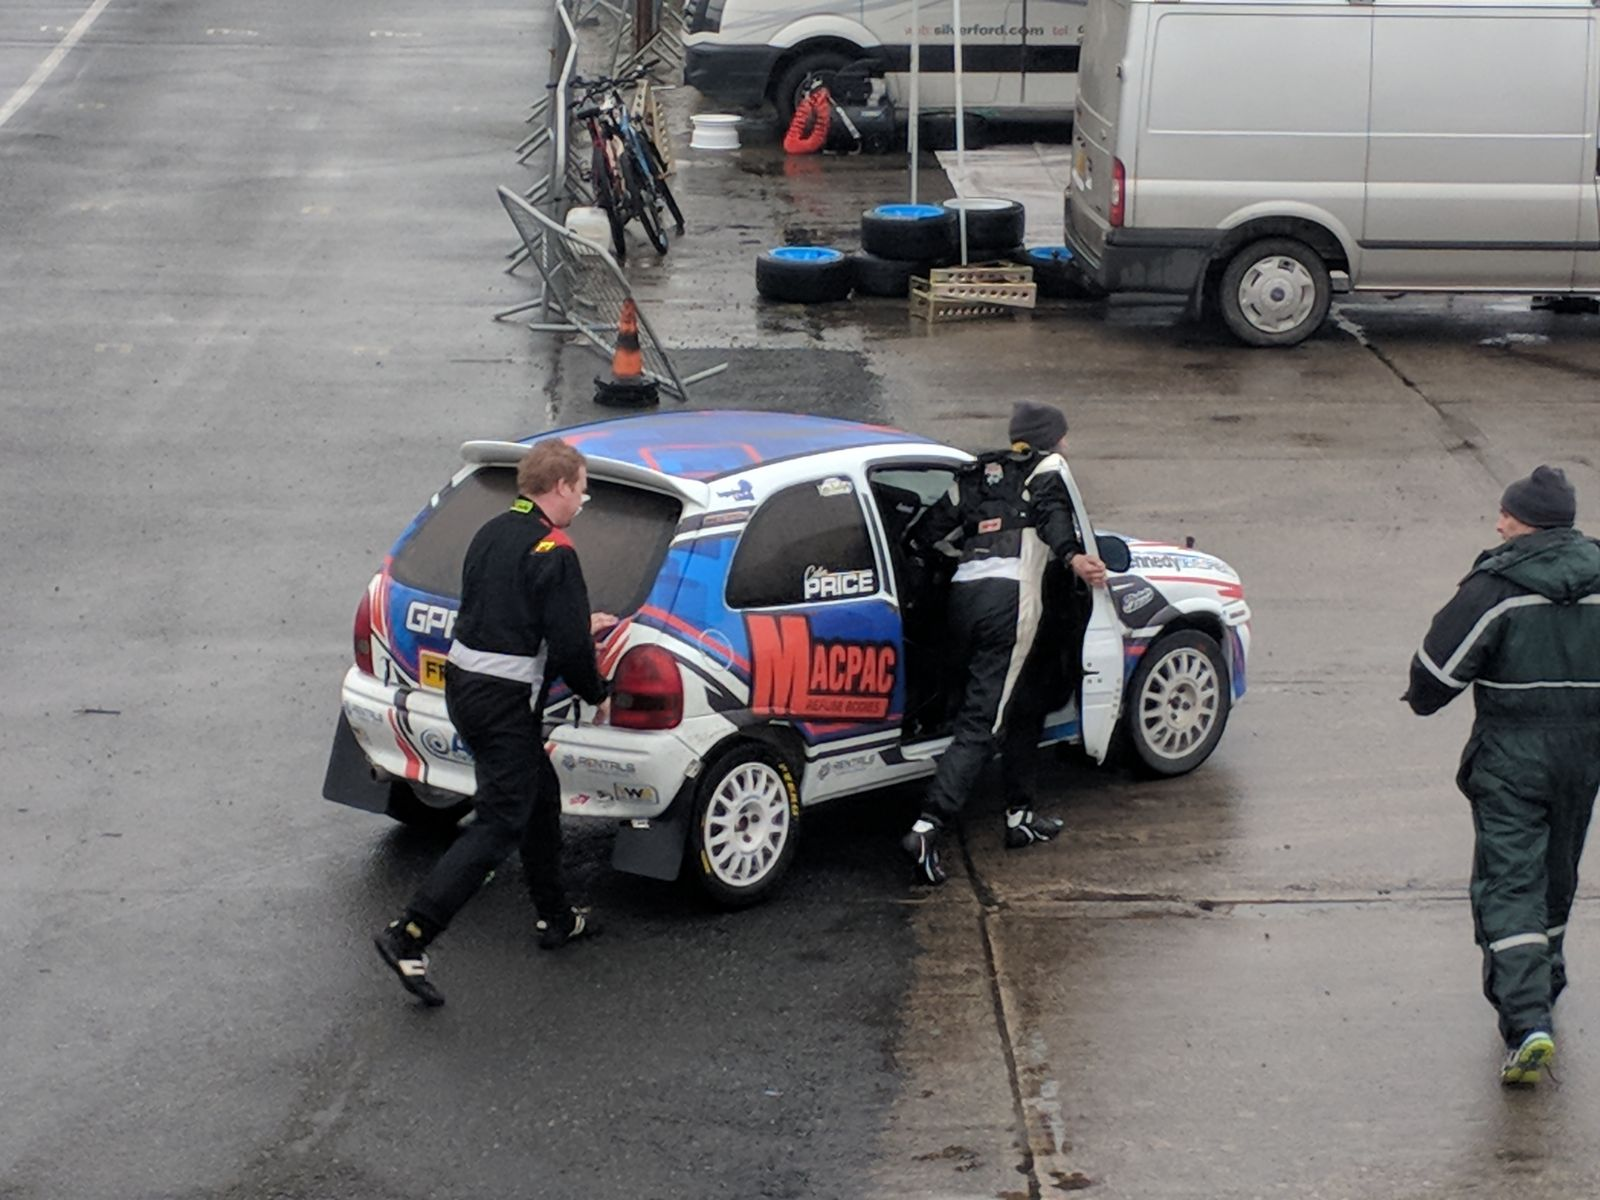 Colin Price pushed his car back into service after SS3.